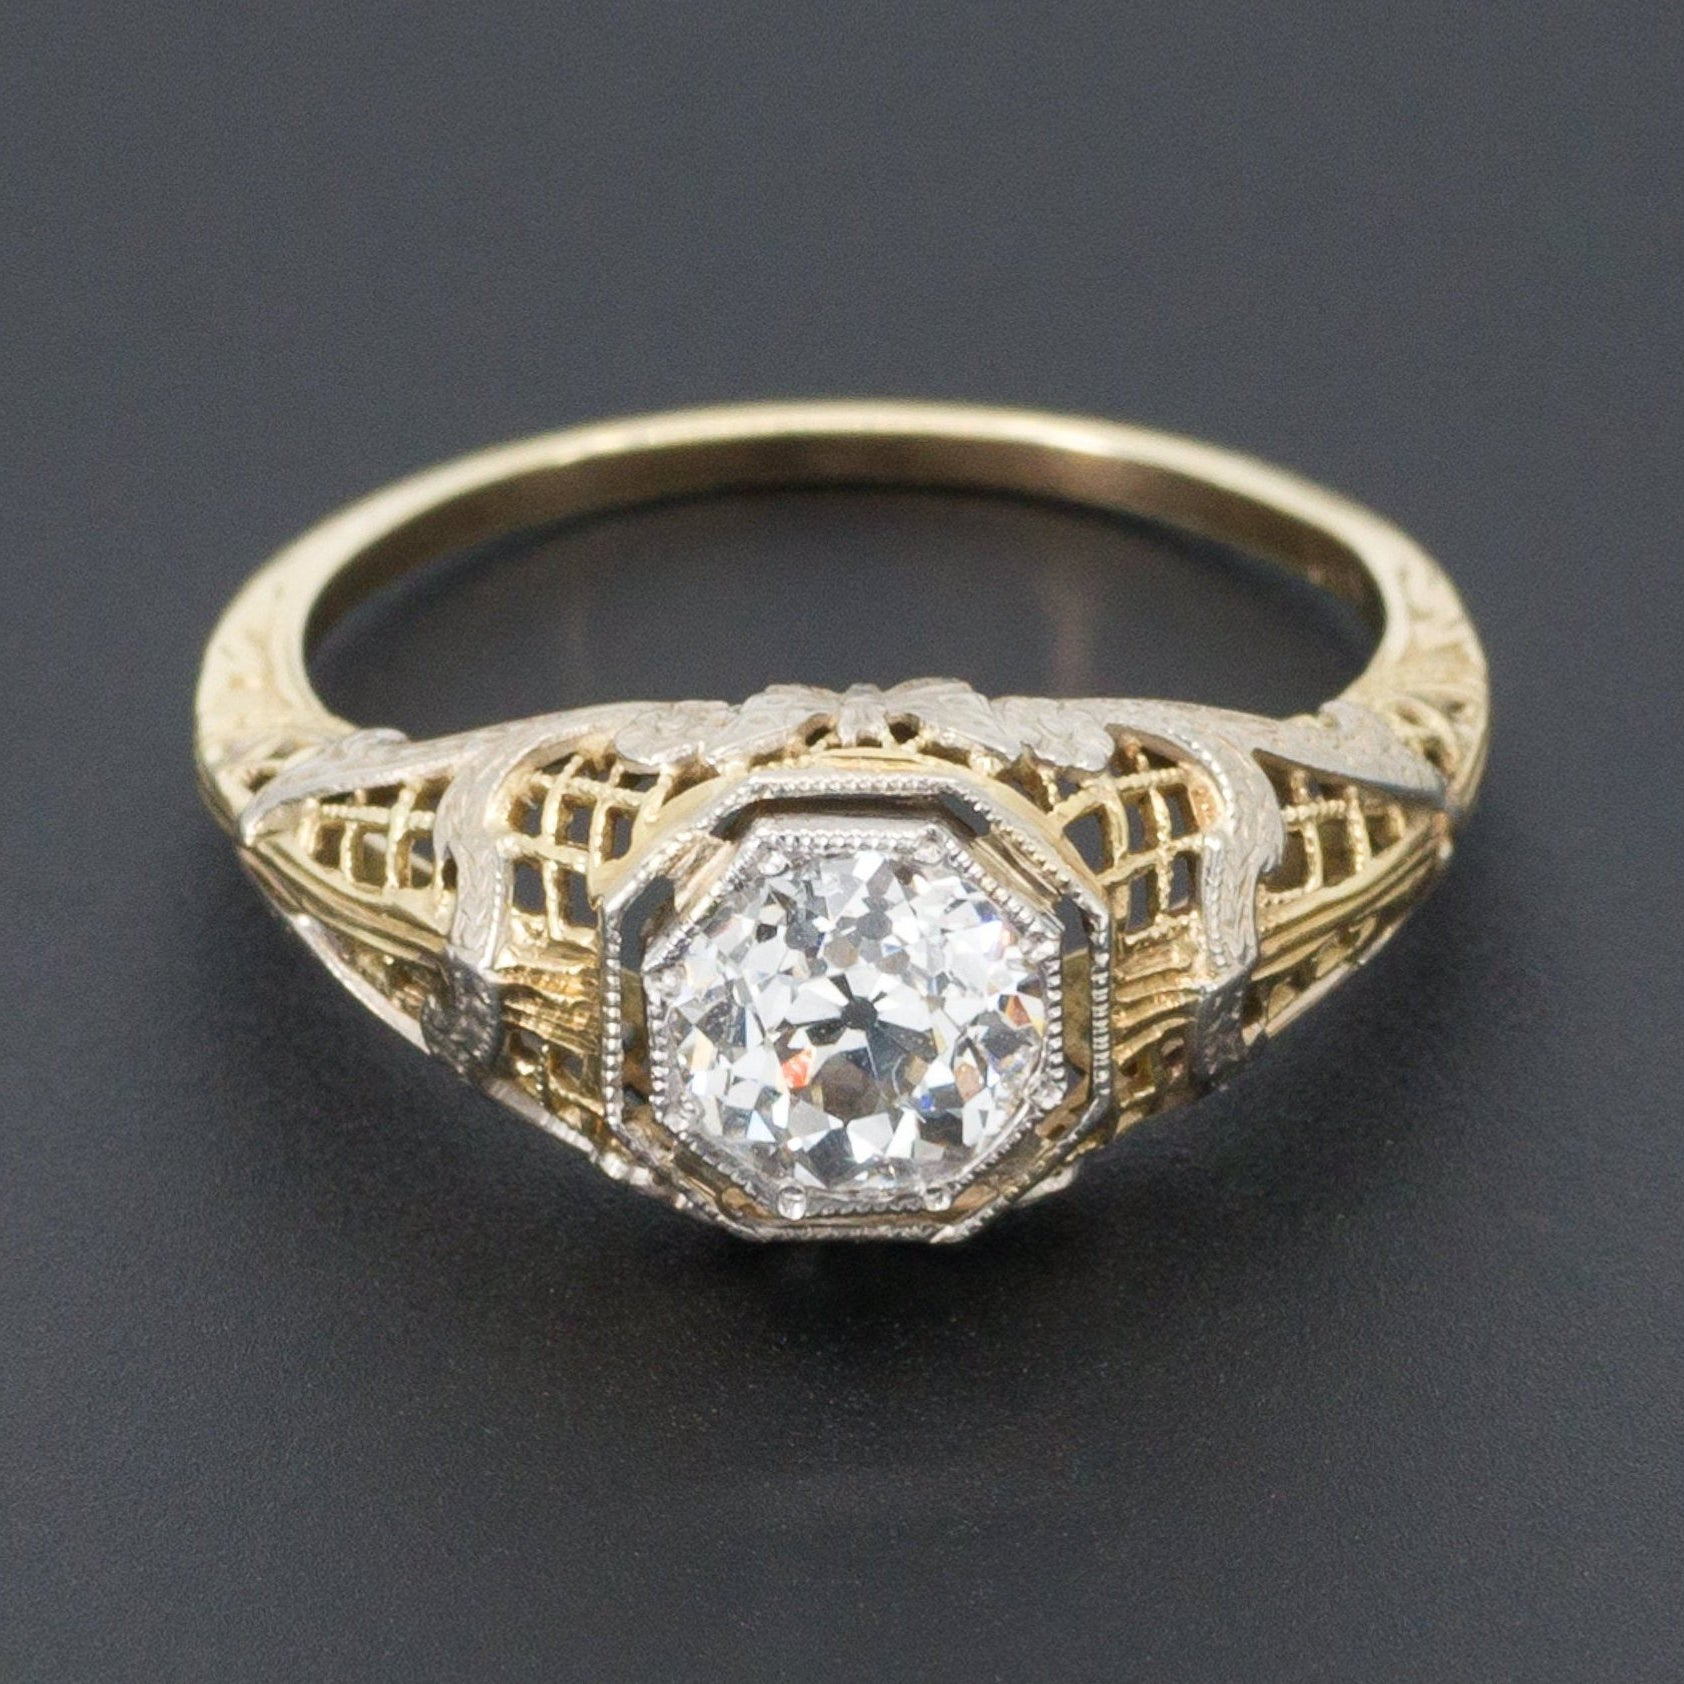 Vintage Engagement Ring | Butterfly Engagement Ring | Filigree Diamond Ring | Yellow & White Gold Filigree Ring